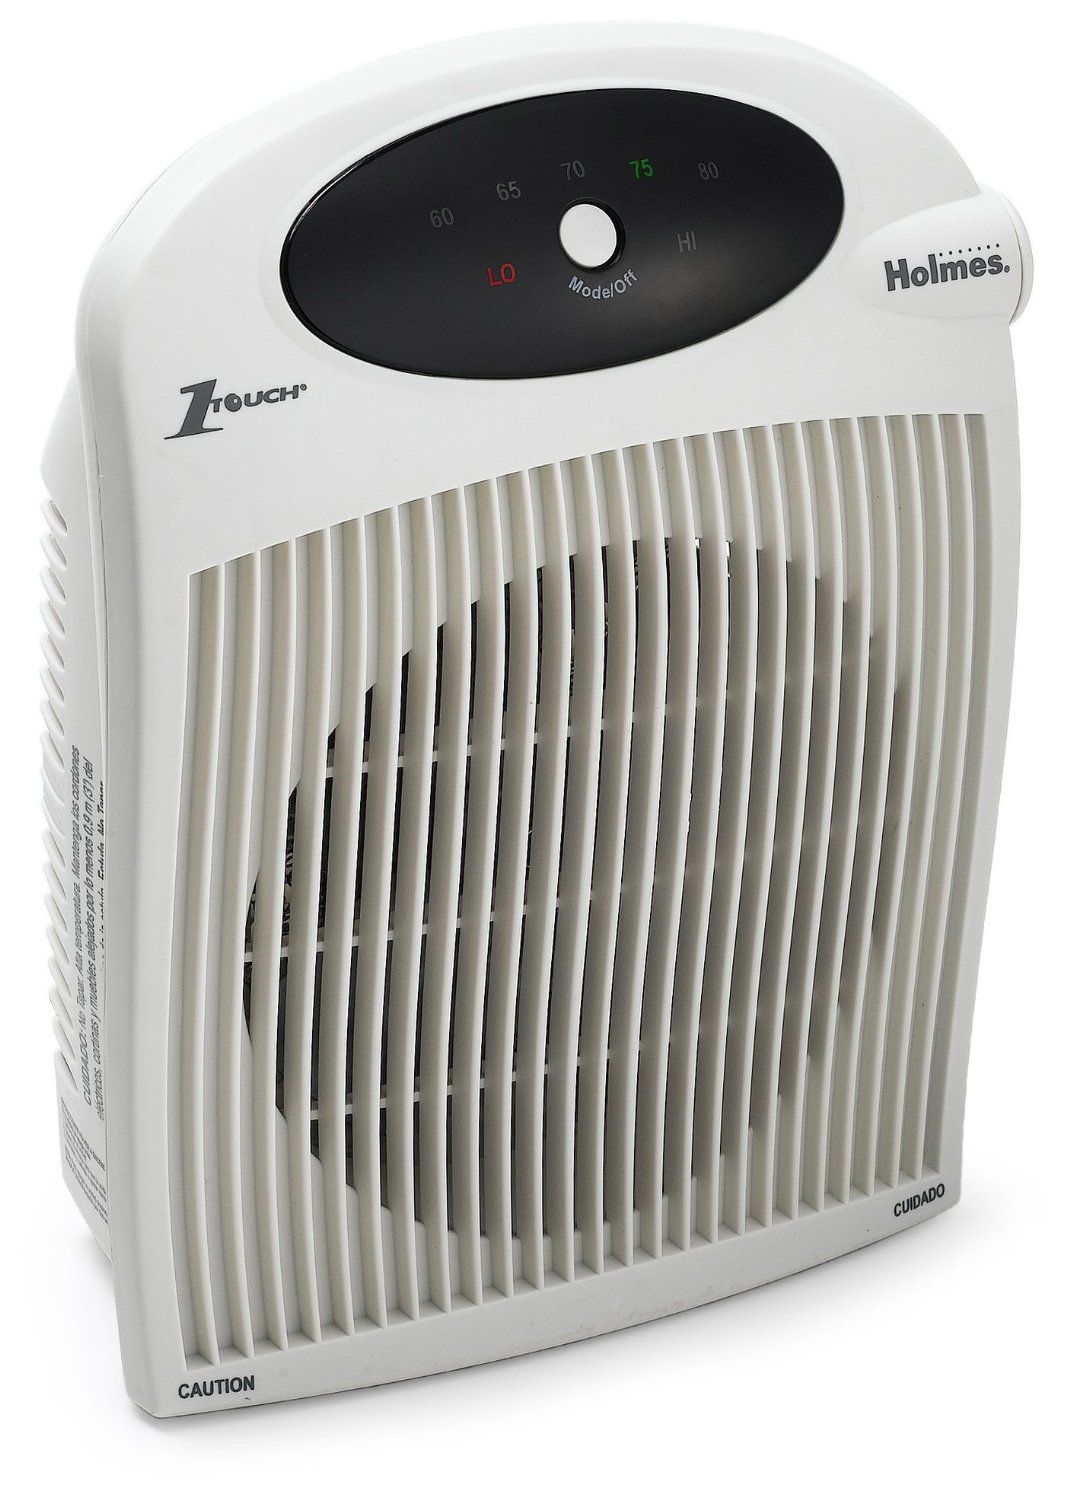 Amazon Com Holmes Heater With 1touch Control And Bathroom Safe